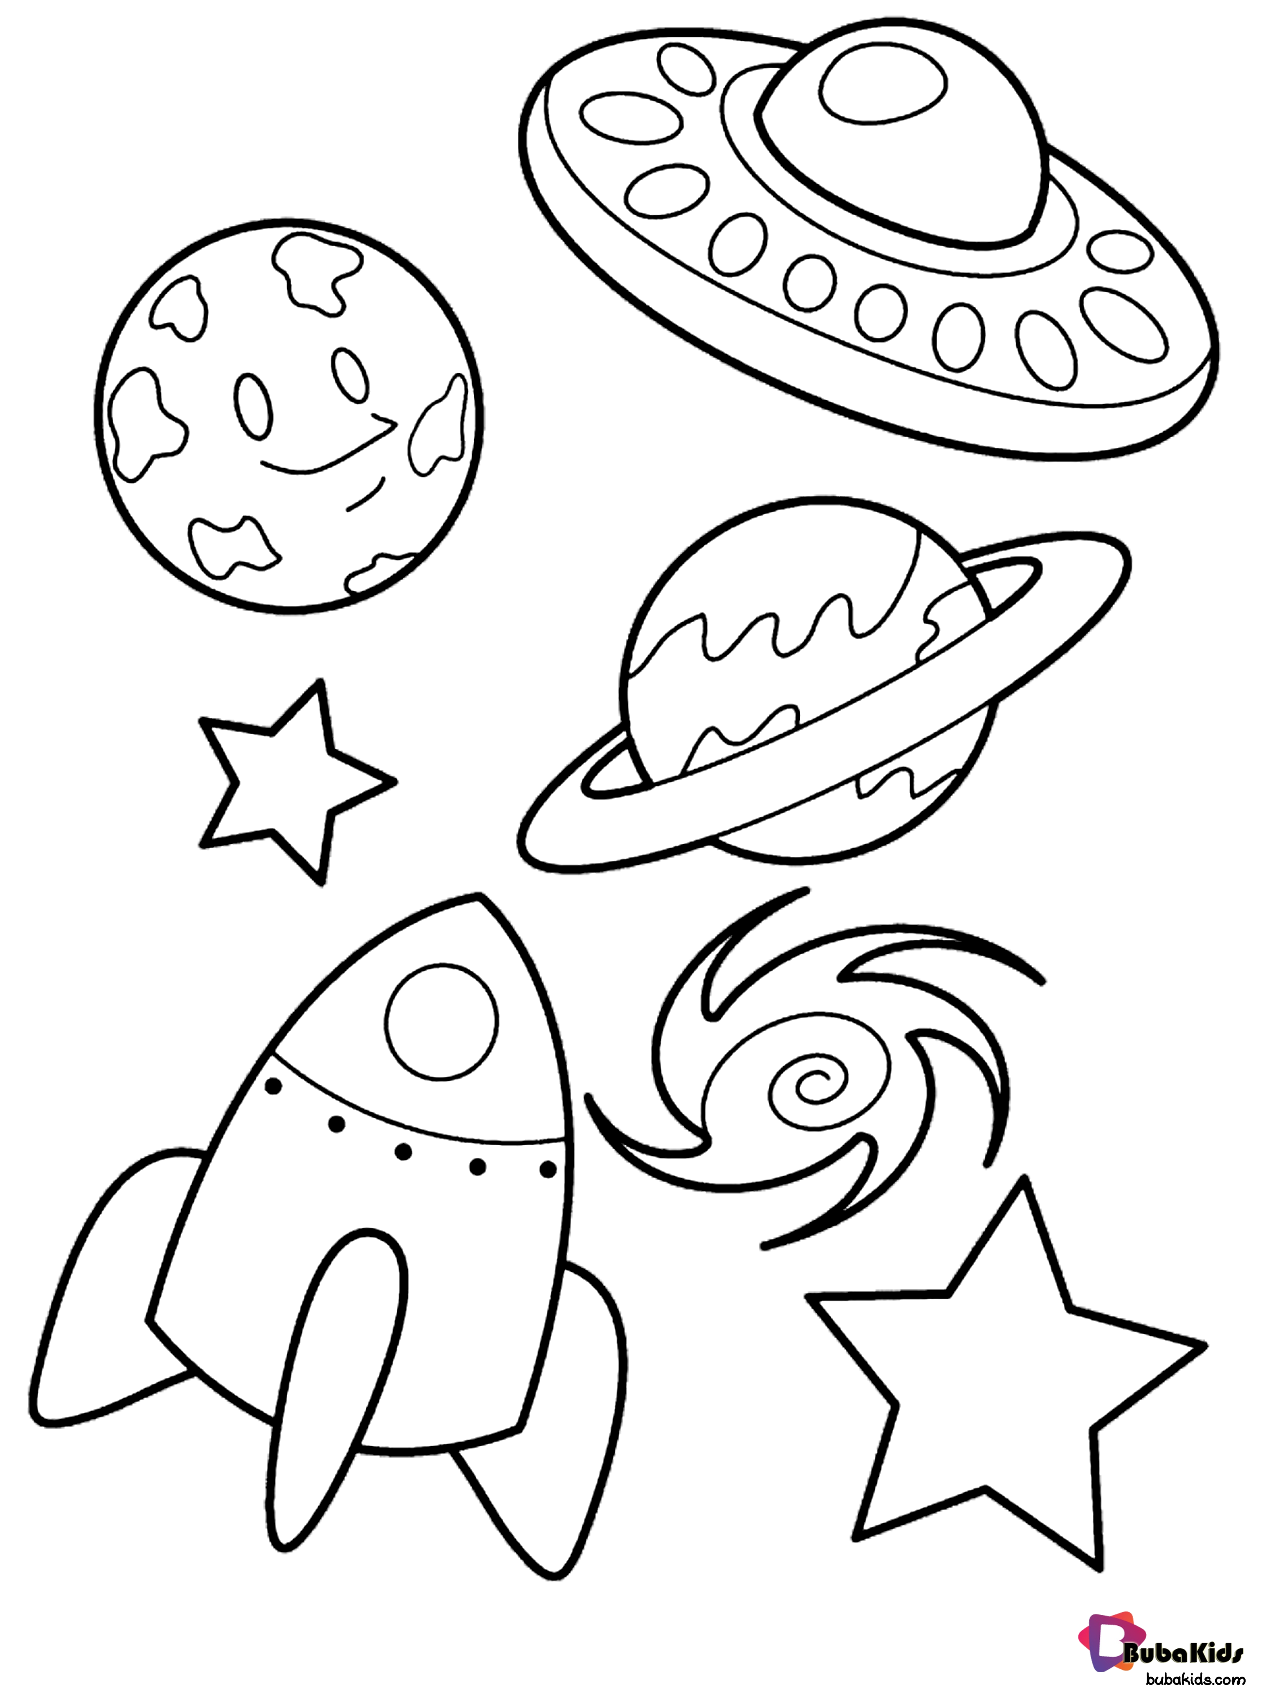 Alien Space Ship Planets Stars And Rocket Outer Space